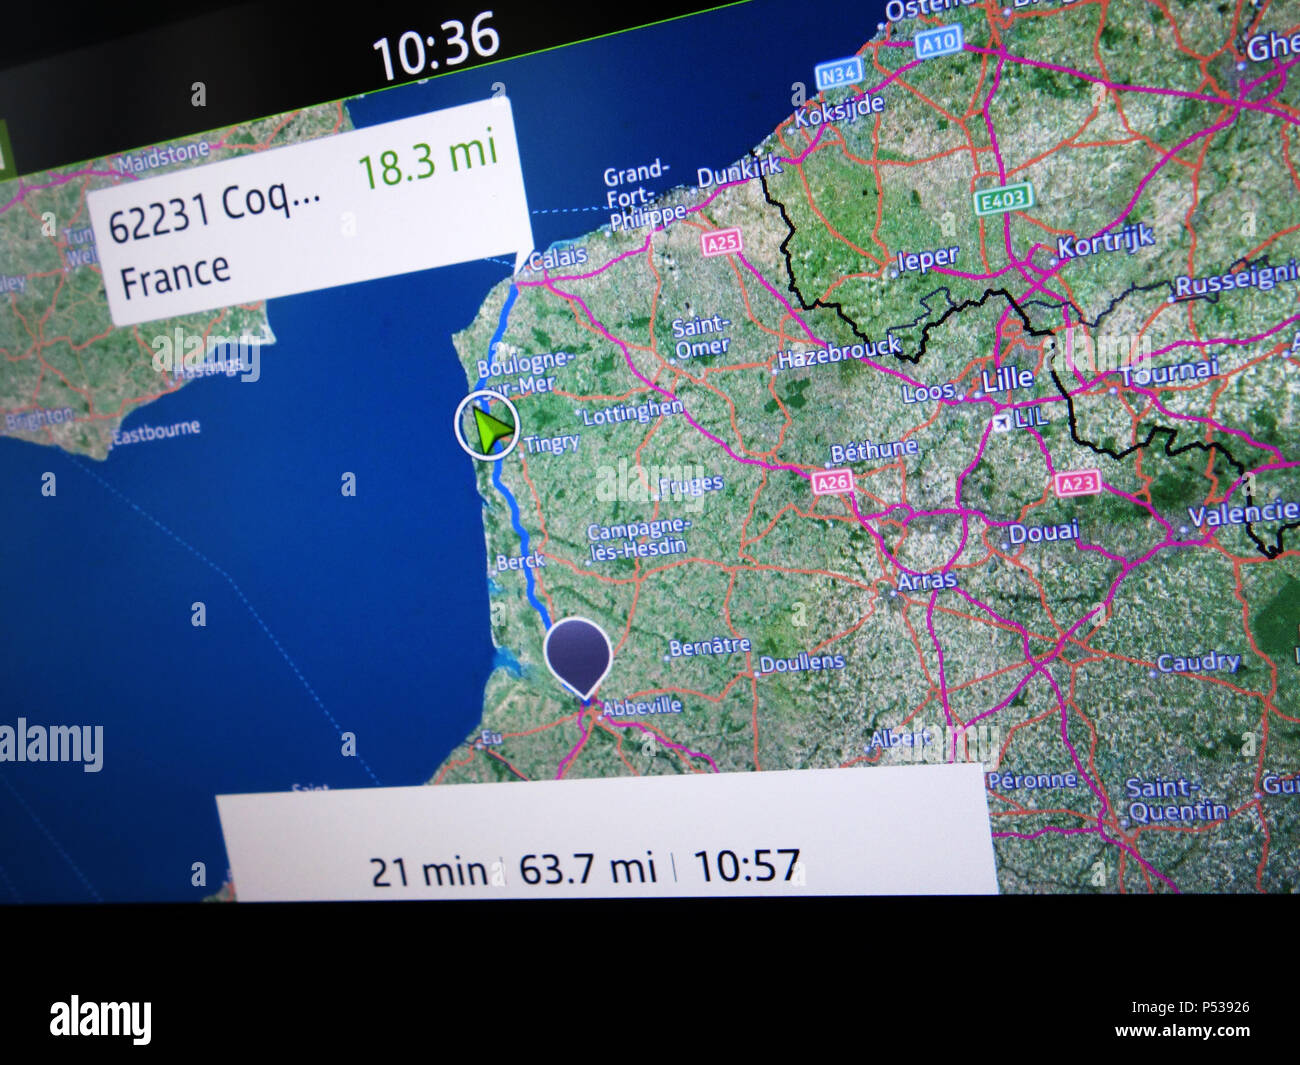 Rear seating individual TV Monitor and entertainment system with Sat Nav route showing live infomation for the passenger on route Le Mans to Calais - Stock Image